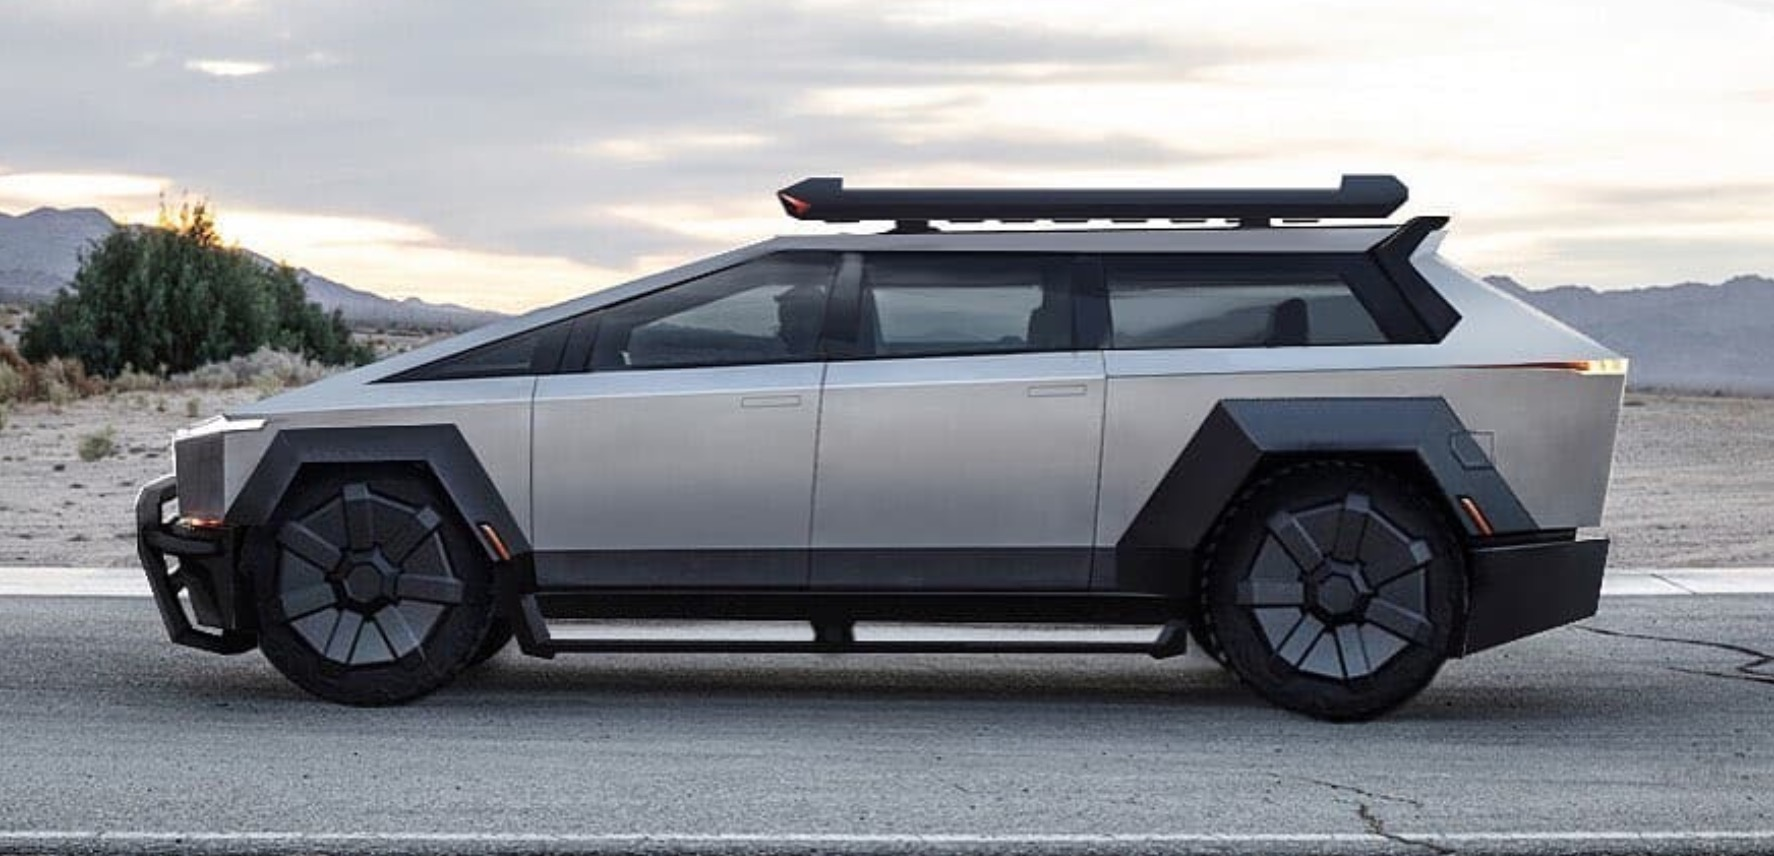 Tesla Cybertruck: Here are some of the coolest mods and attachments - Electrek